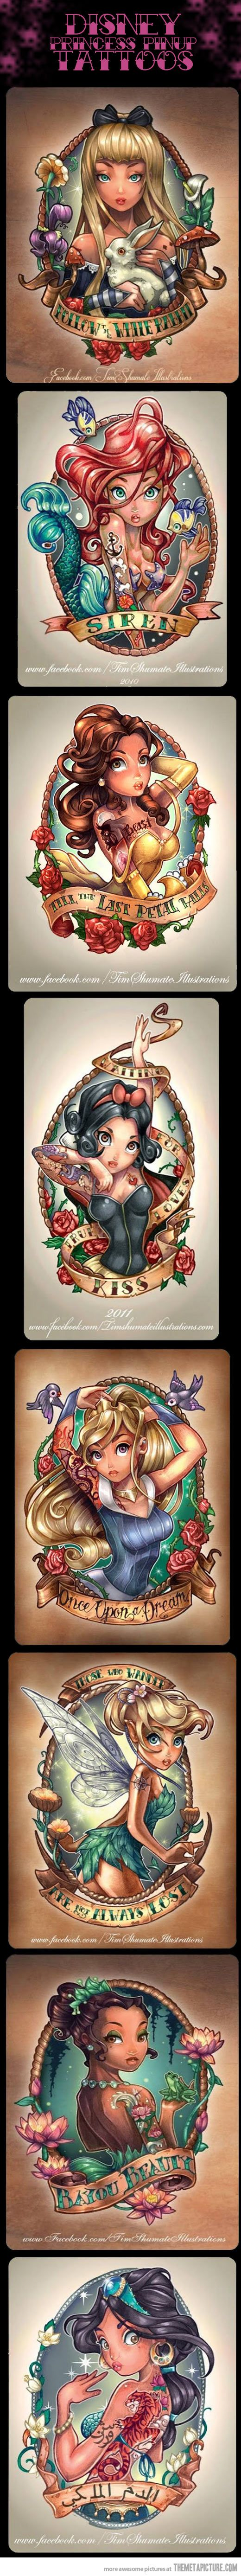 8 Very Cool Disney Princess Pinup Tattoos…